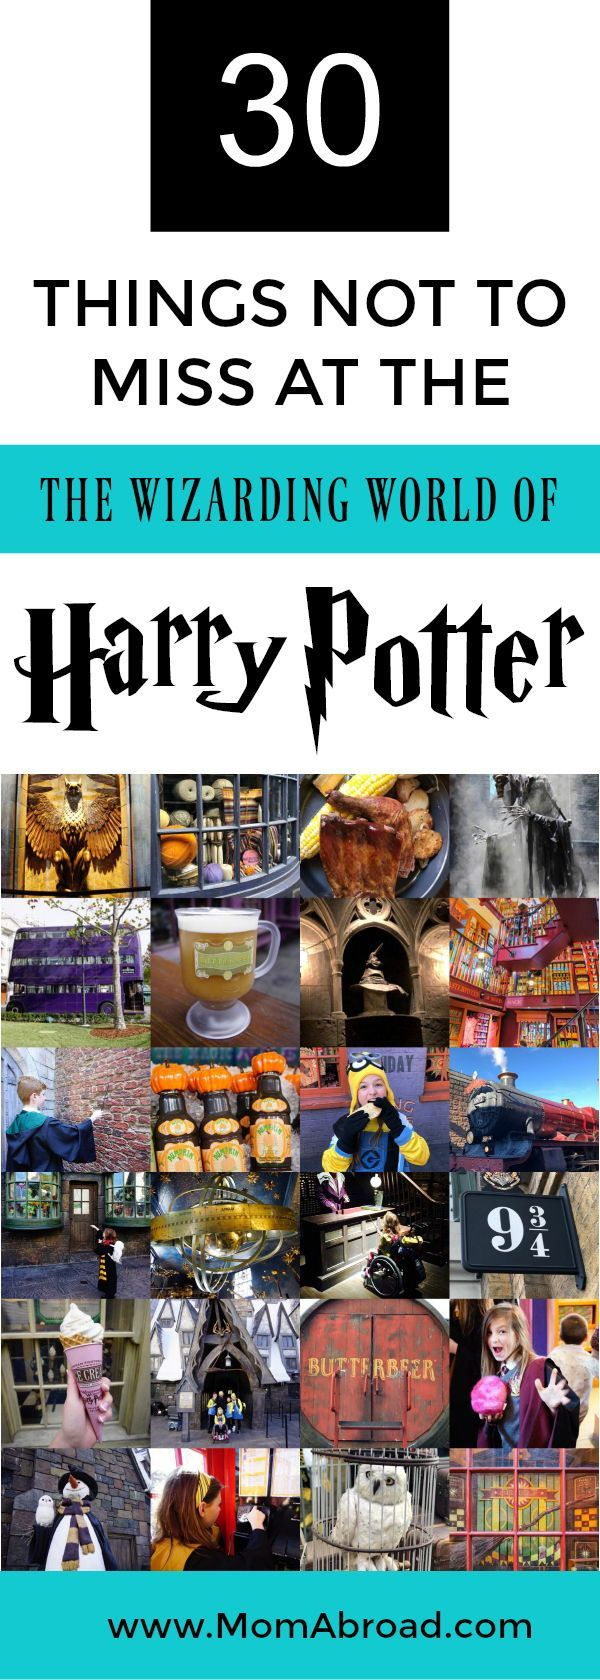 There is so much magic at the Wizarding World of Harry Potter in Orlando, Florida that can easily be missed if you don't know where and what to look for. Here are 30 thing not to miss at the Wizarding World of Harry Potter including hidden gems and top ti